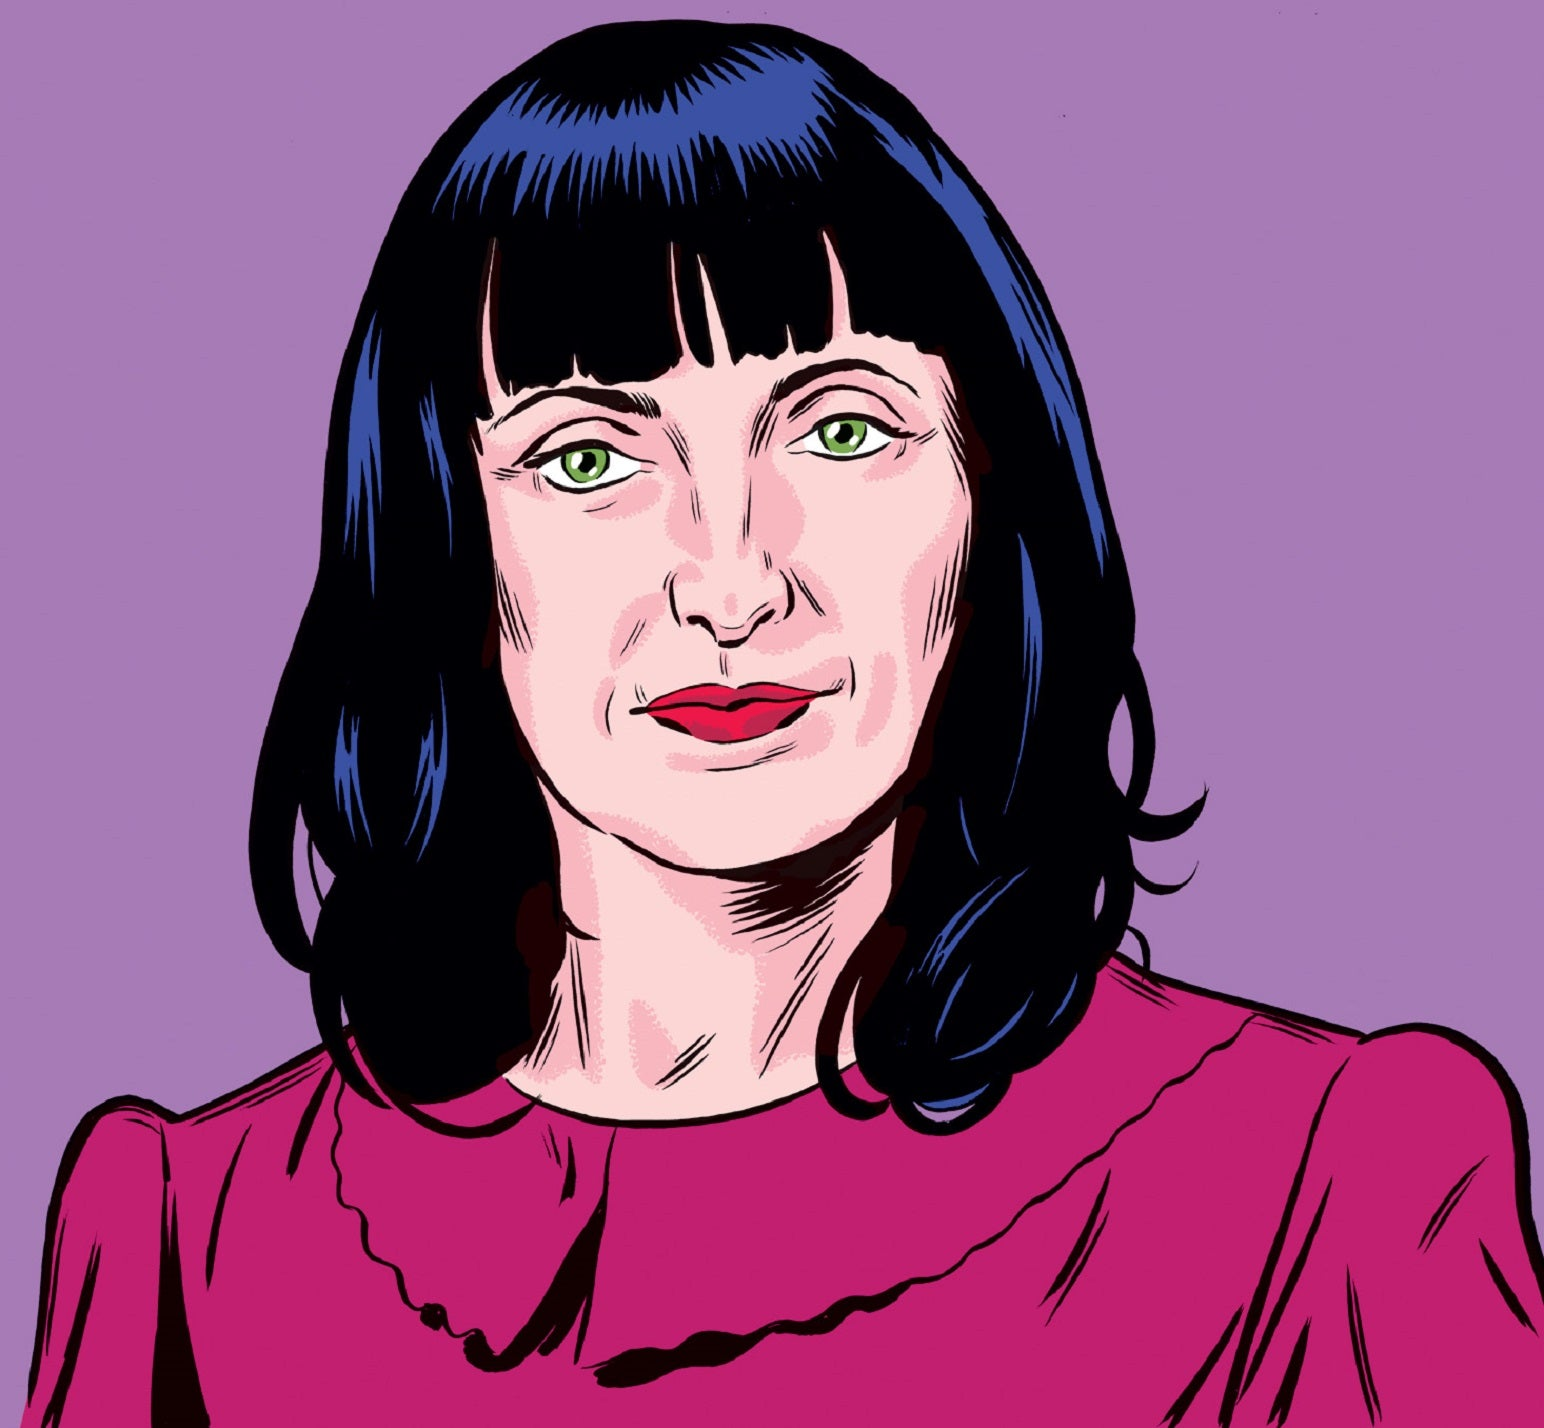 """Sinéad Gleeson Q&A: """"It's enough to get regular jolts of happiness"""""""